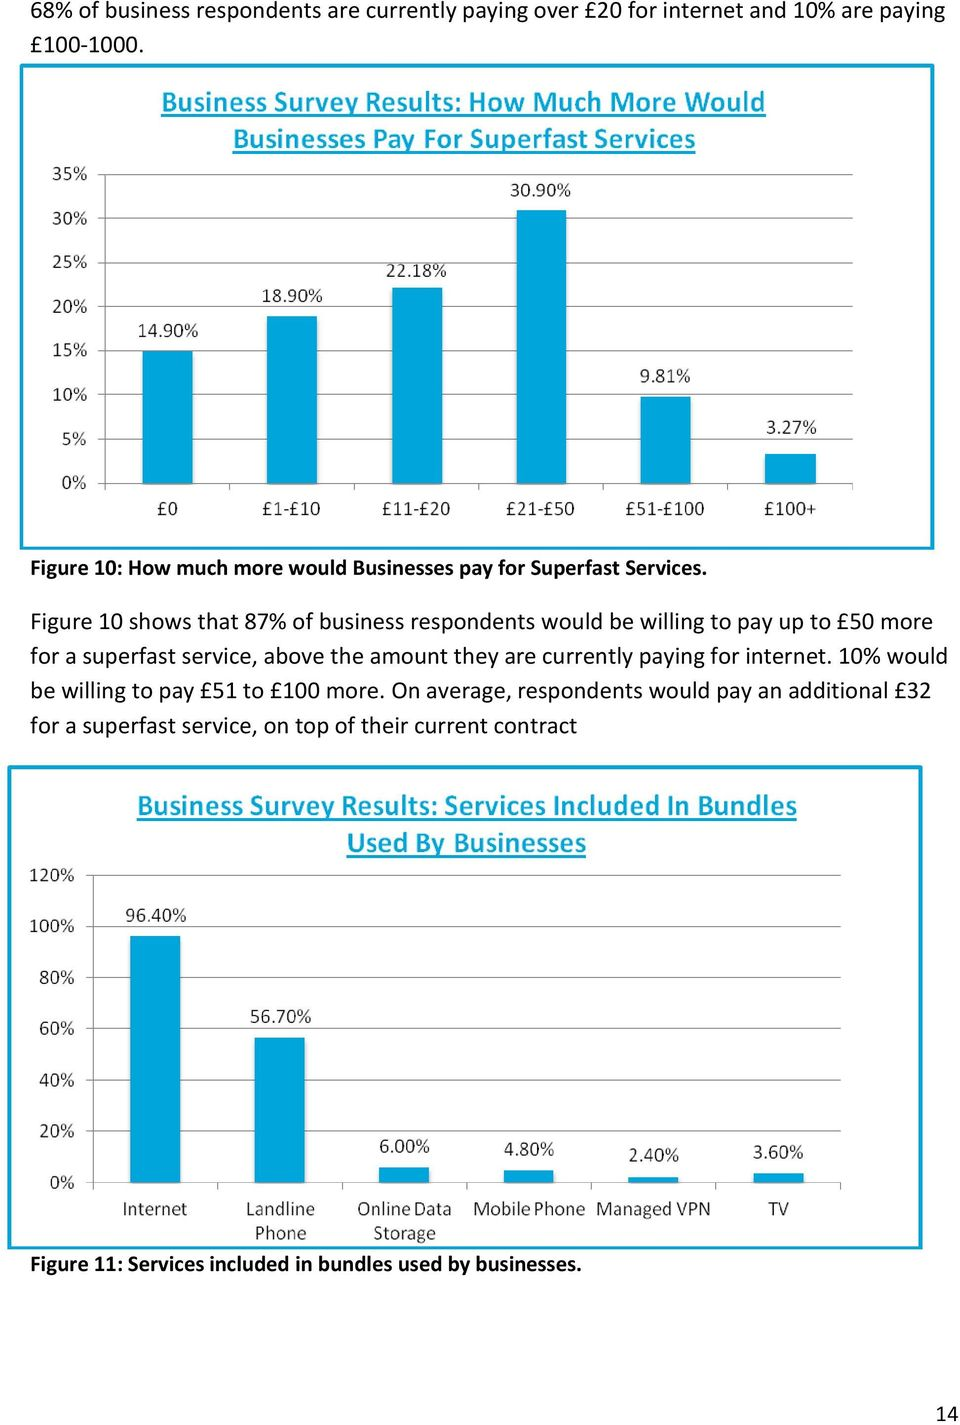 Figure 10 shows that 87% of business respondents would be willing to pay up to 50 more for a superfast service, above the amount they are